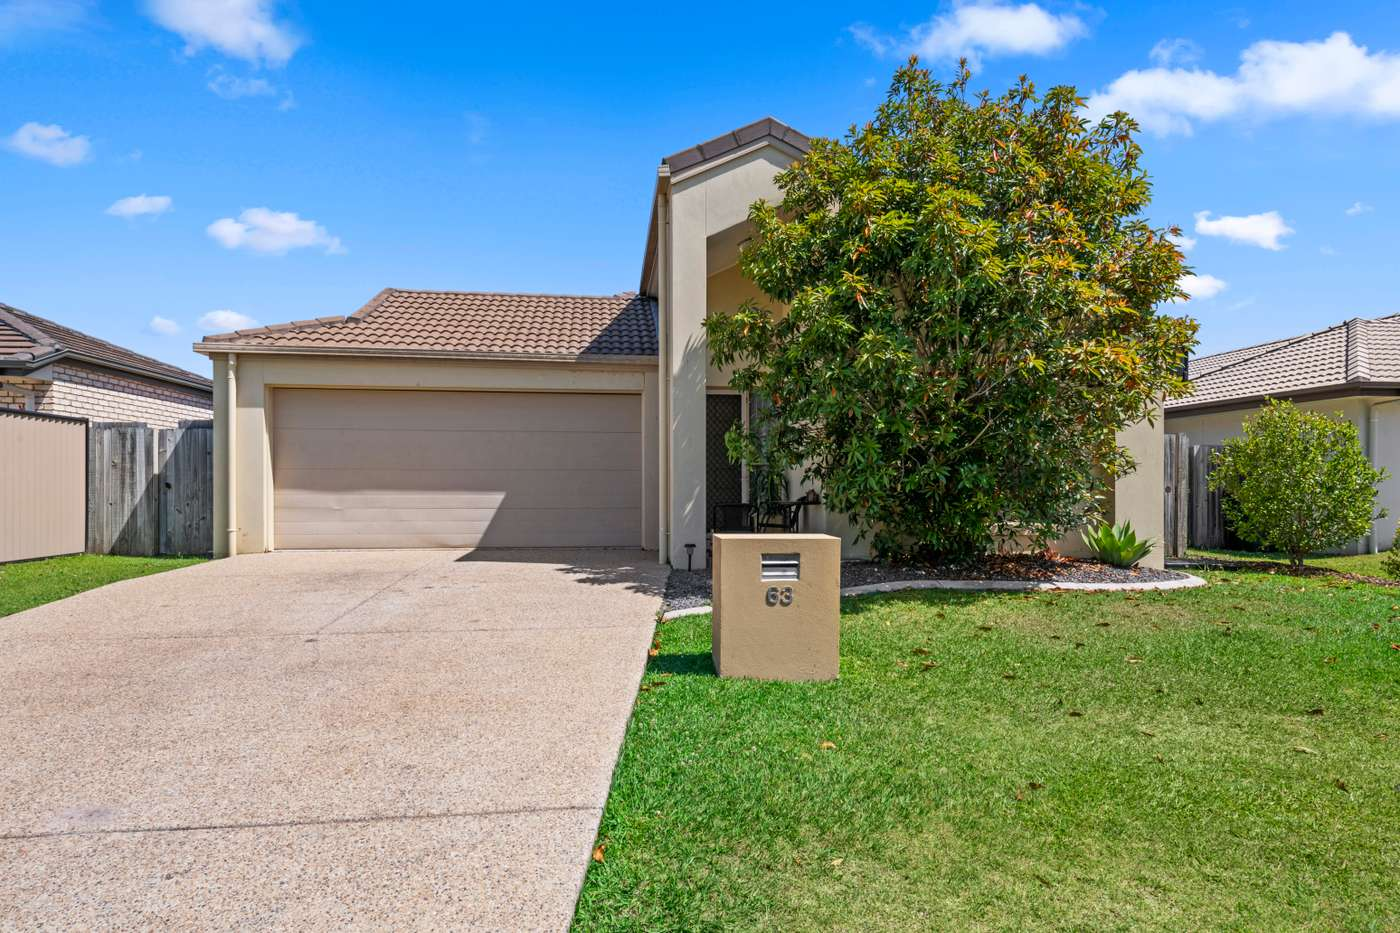 Main view of Homely house listing, 63 Feathertop Circuit, Caloundra West, QLD 4551